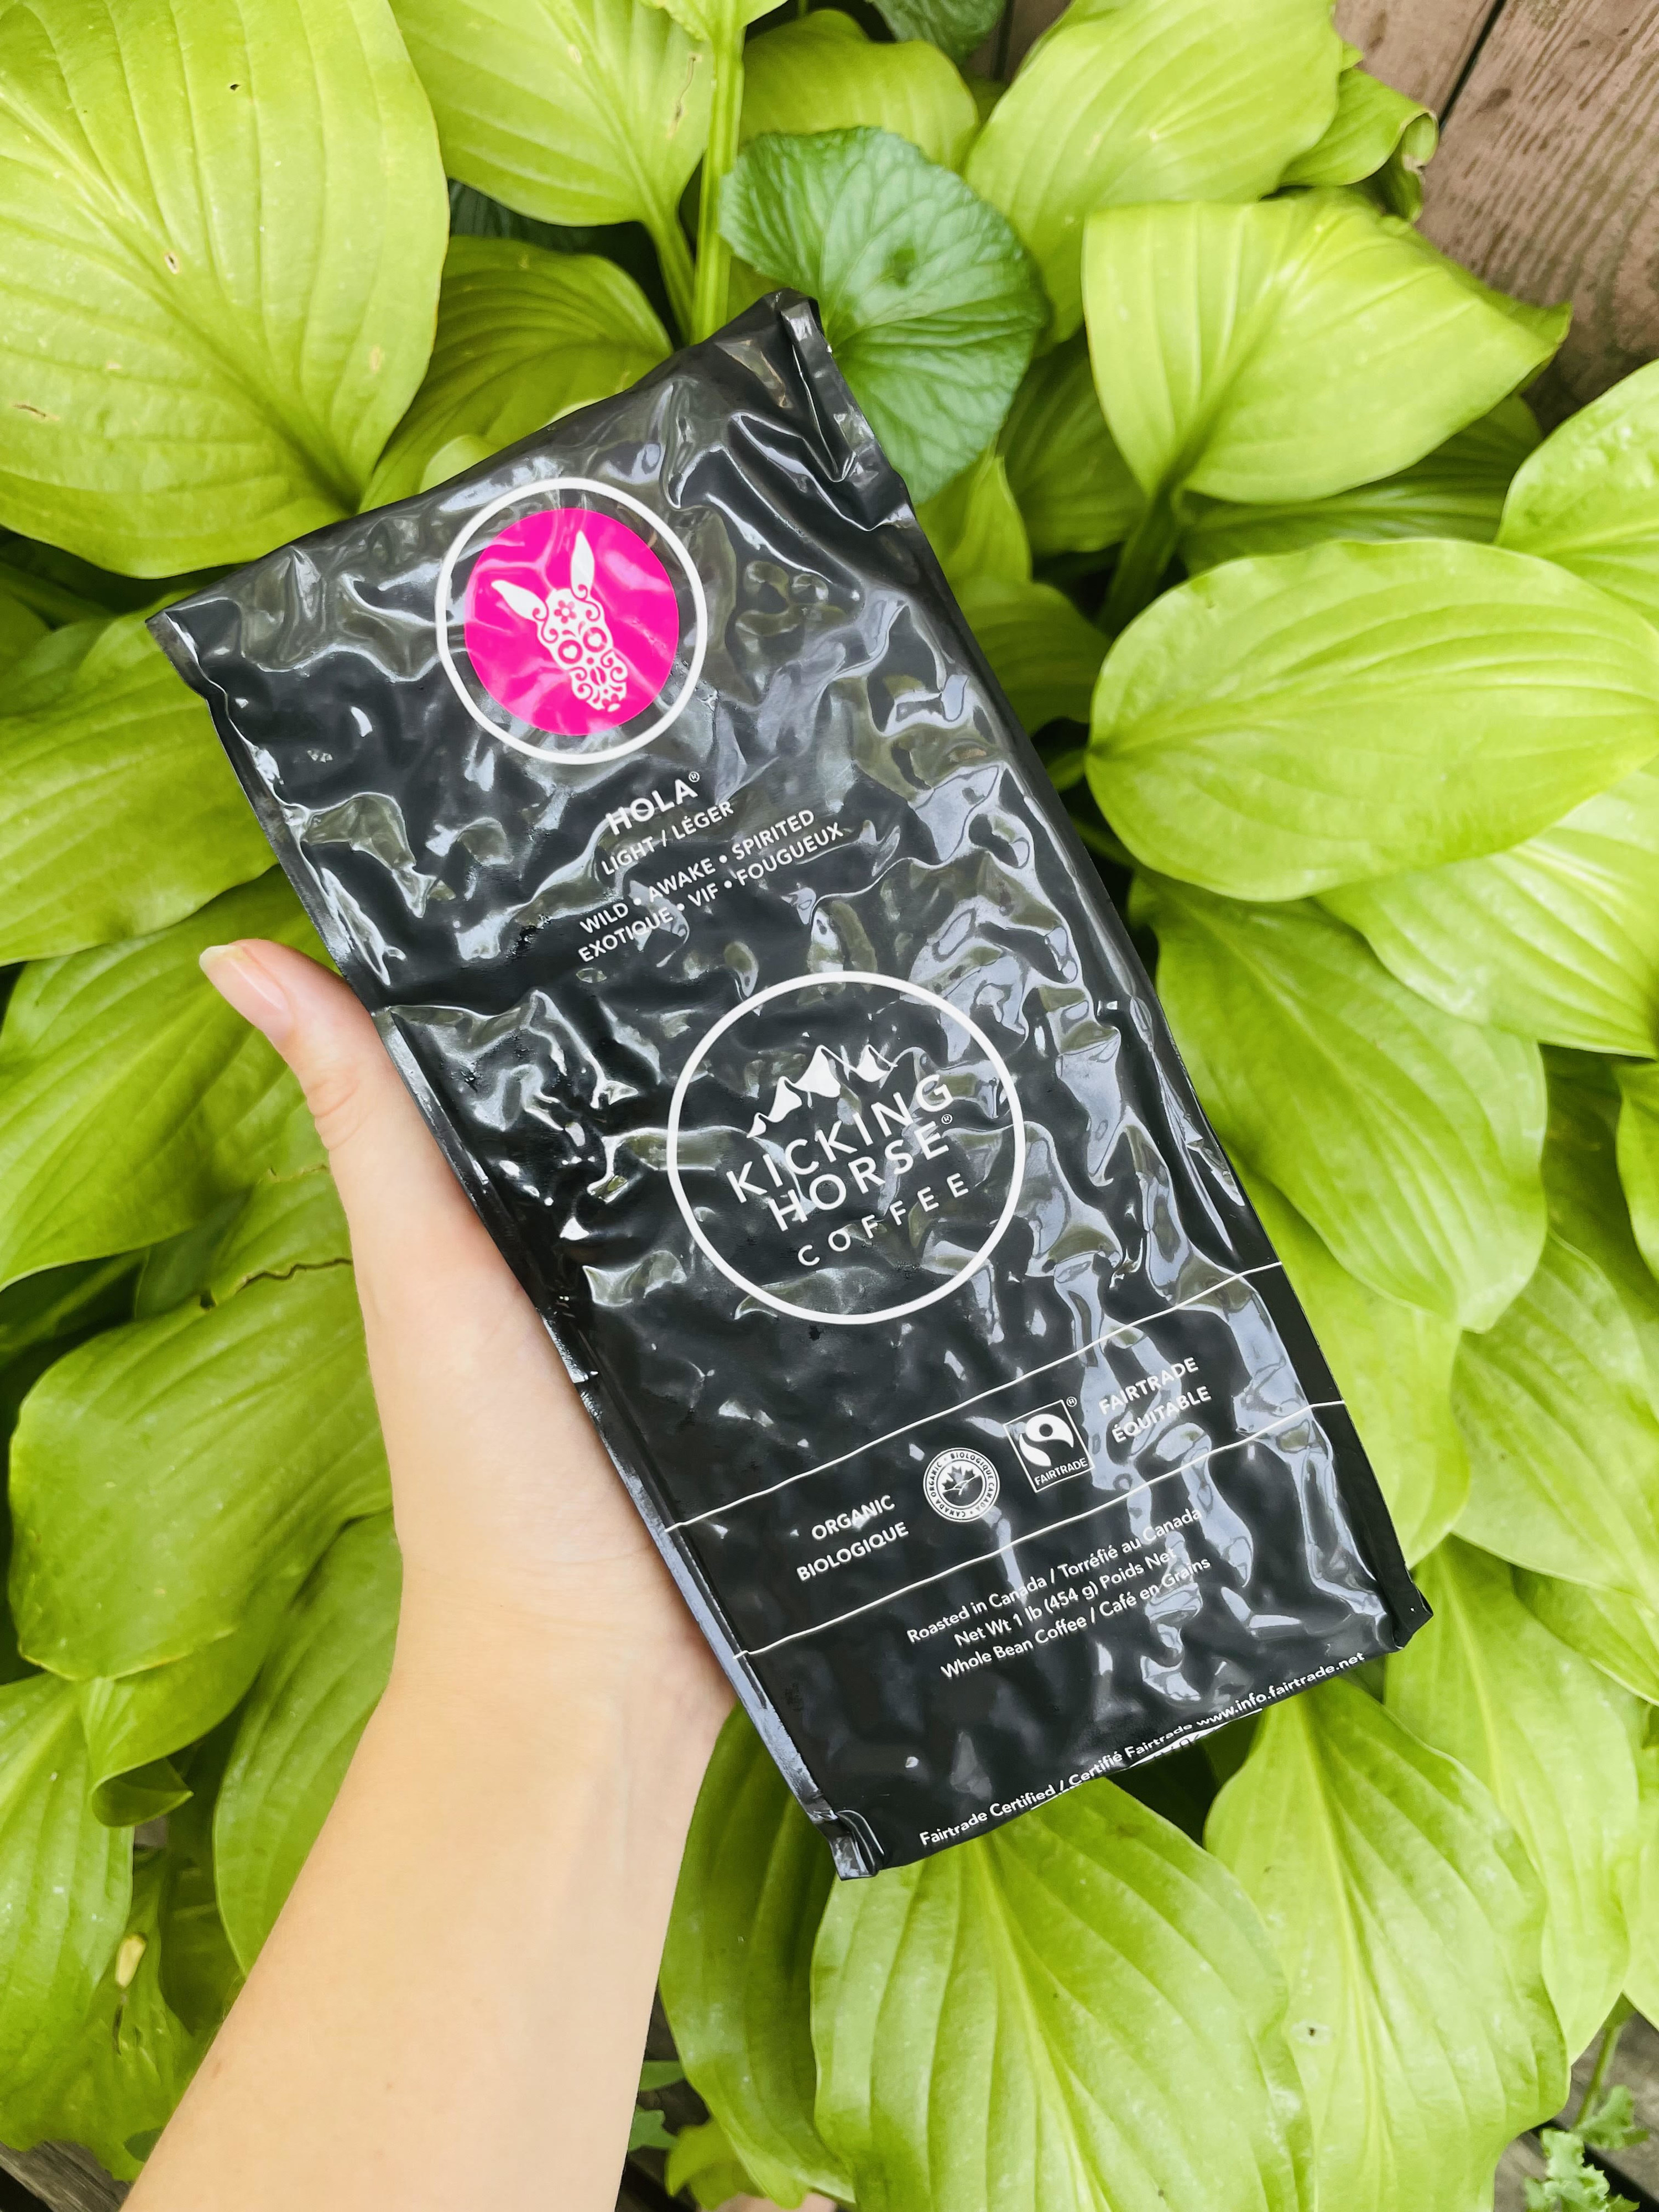 A person holding a bag of coffee in front of a plant